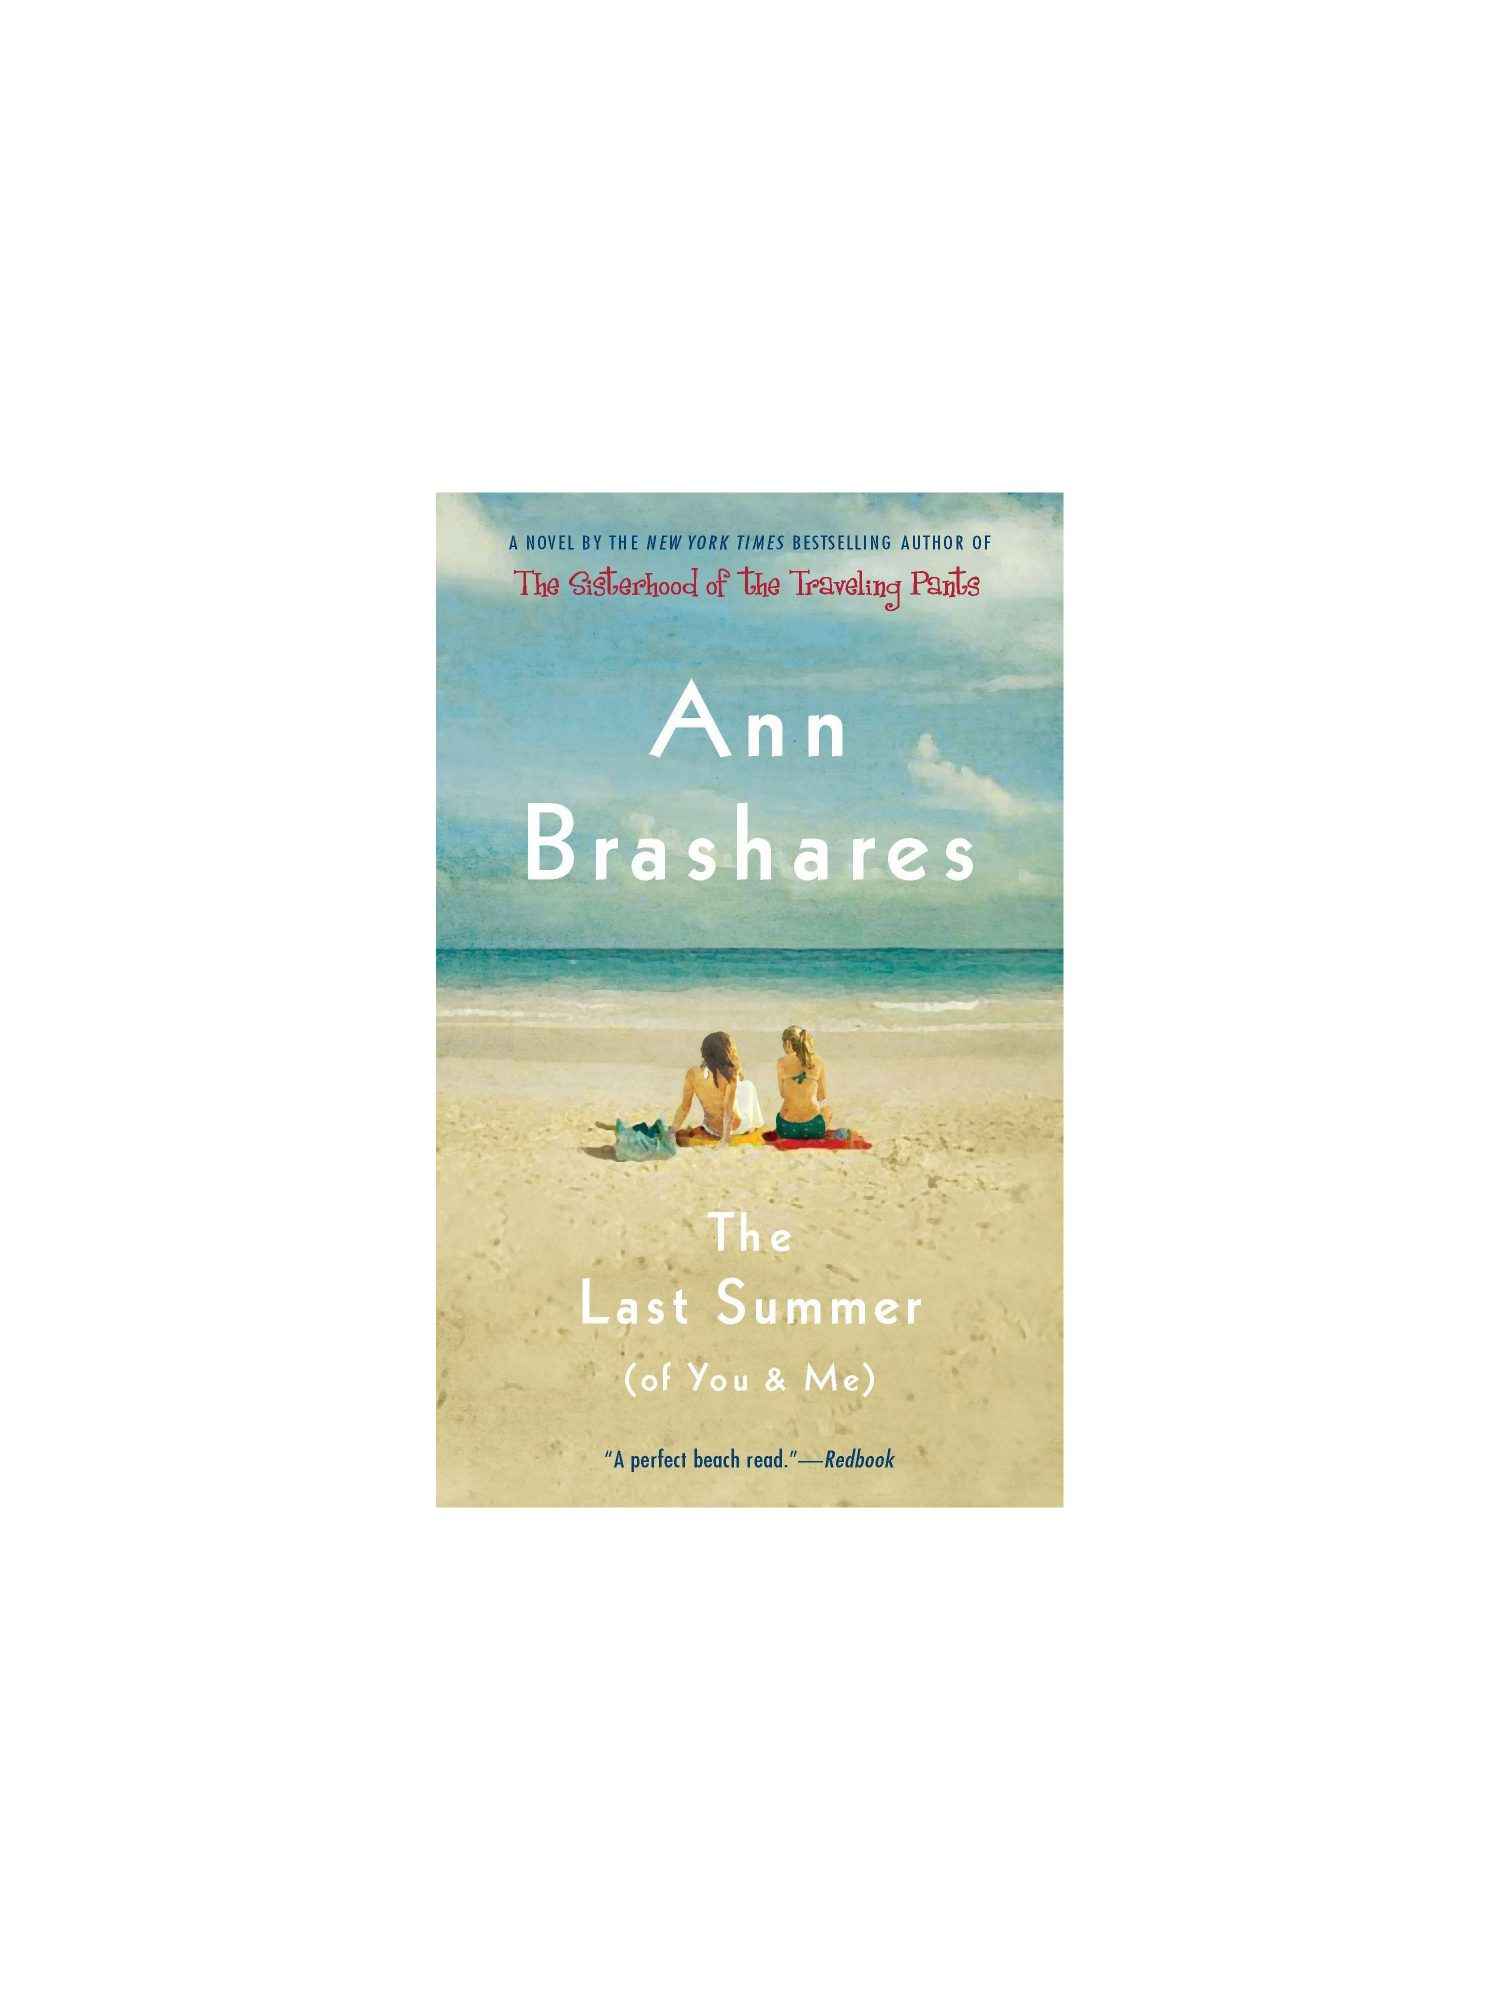 The Last Summer (of You and Me), by Ann Brashares